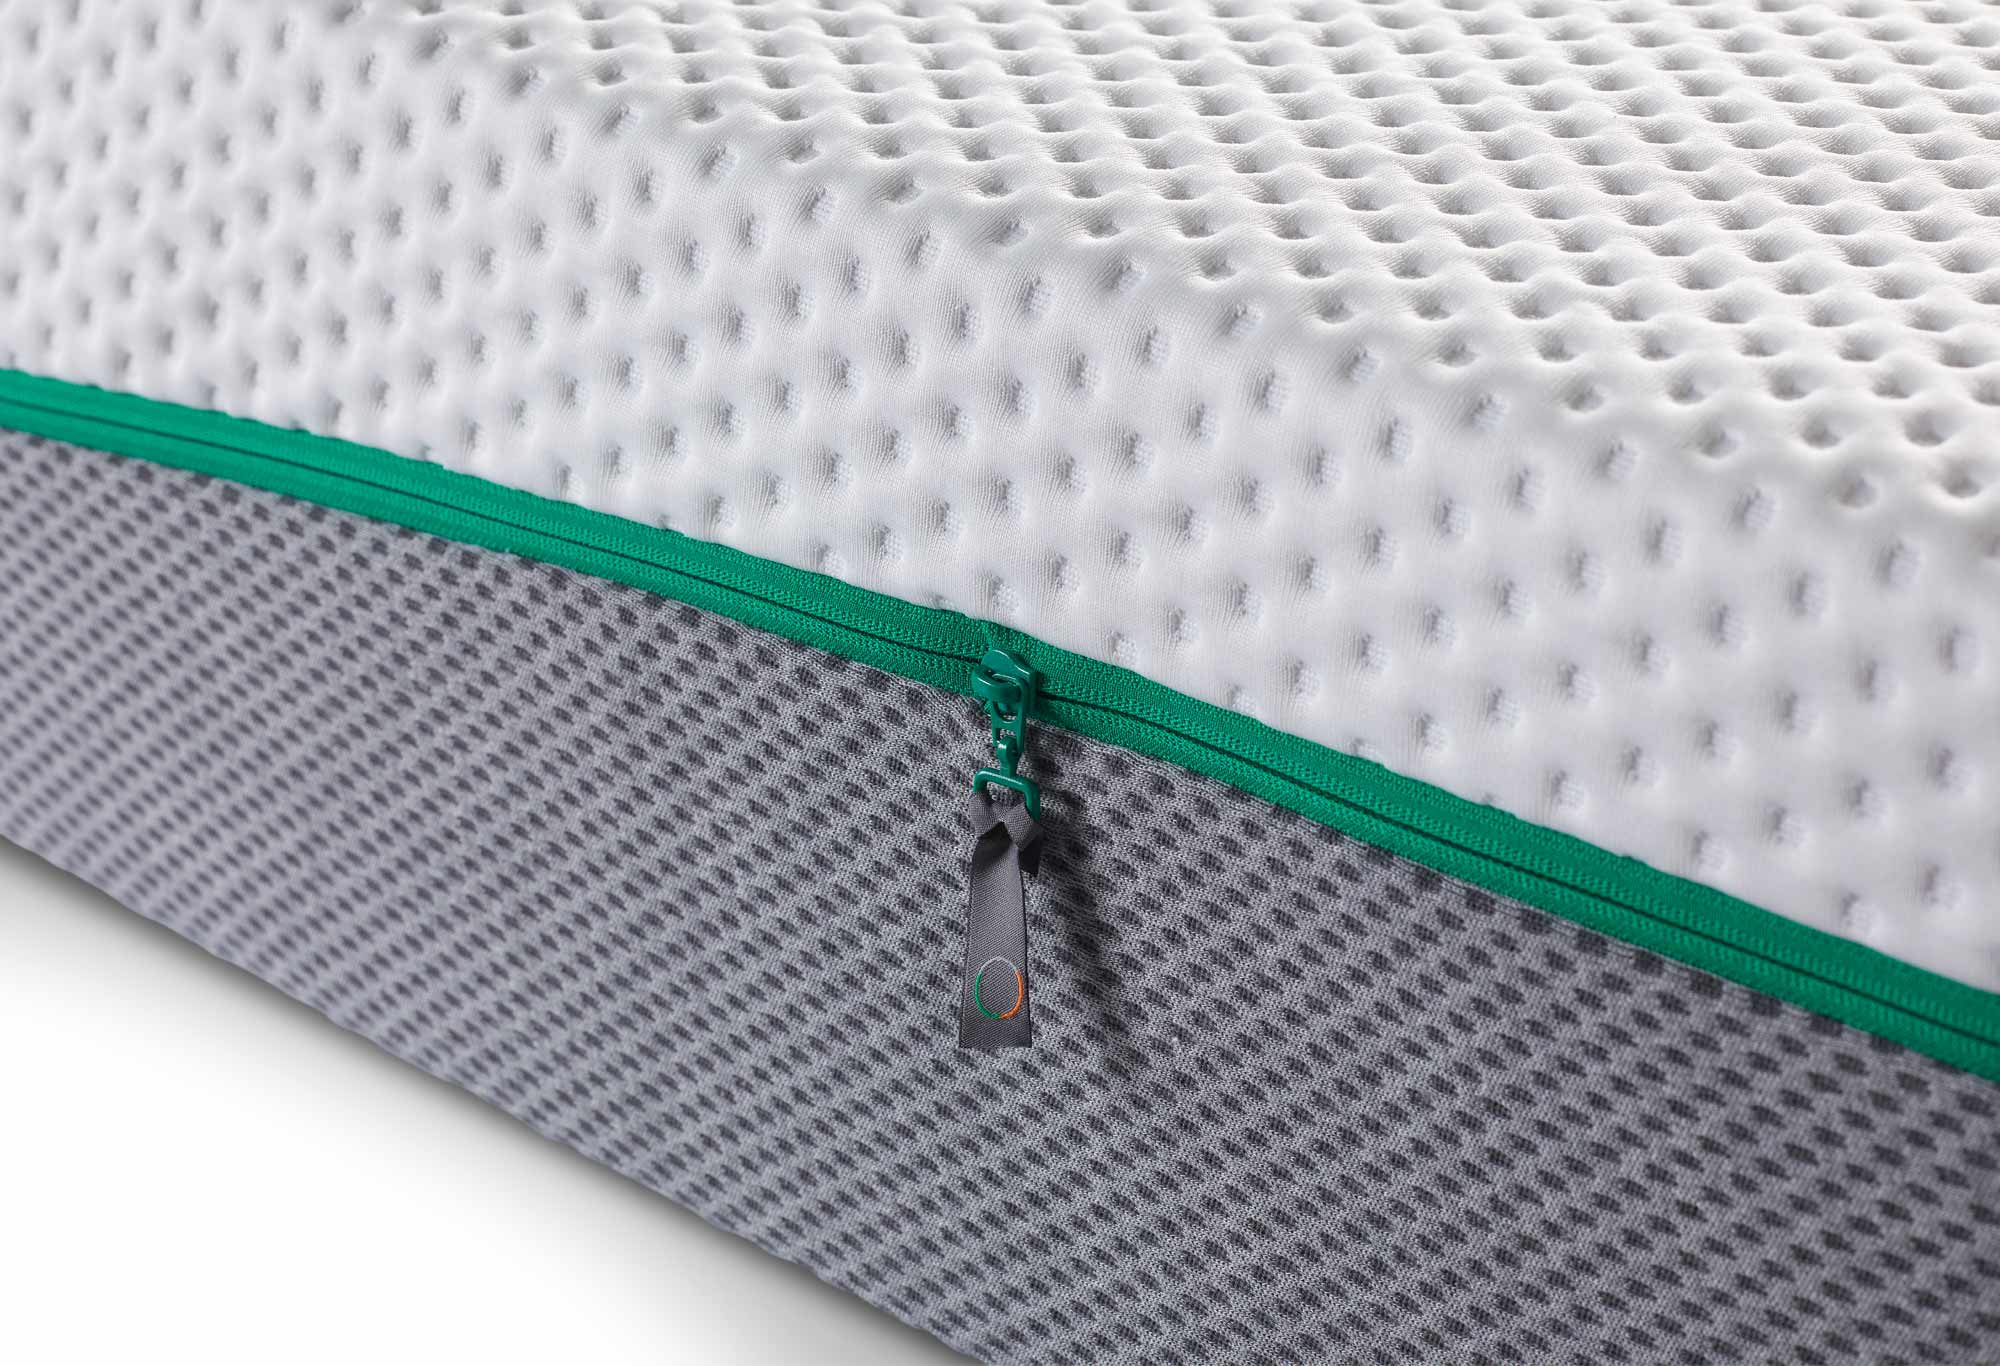 Rhythm Flow Matras | Swiss Sense